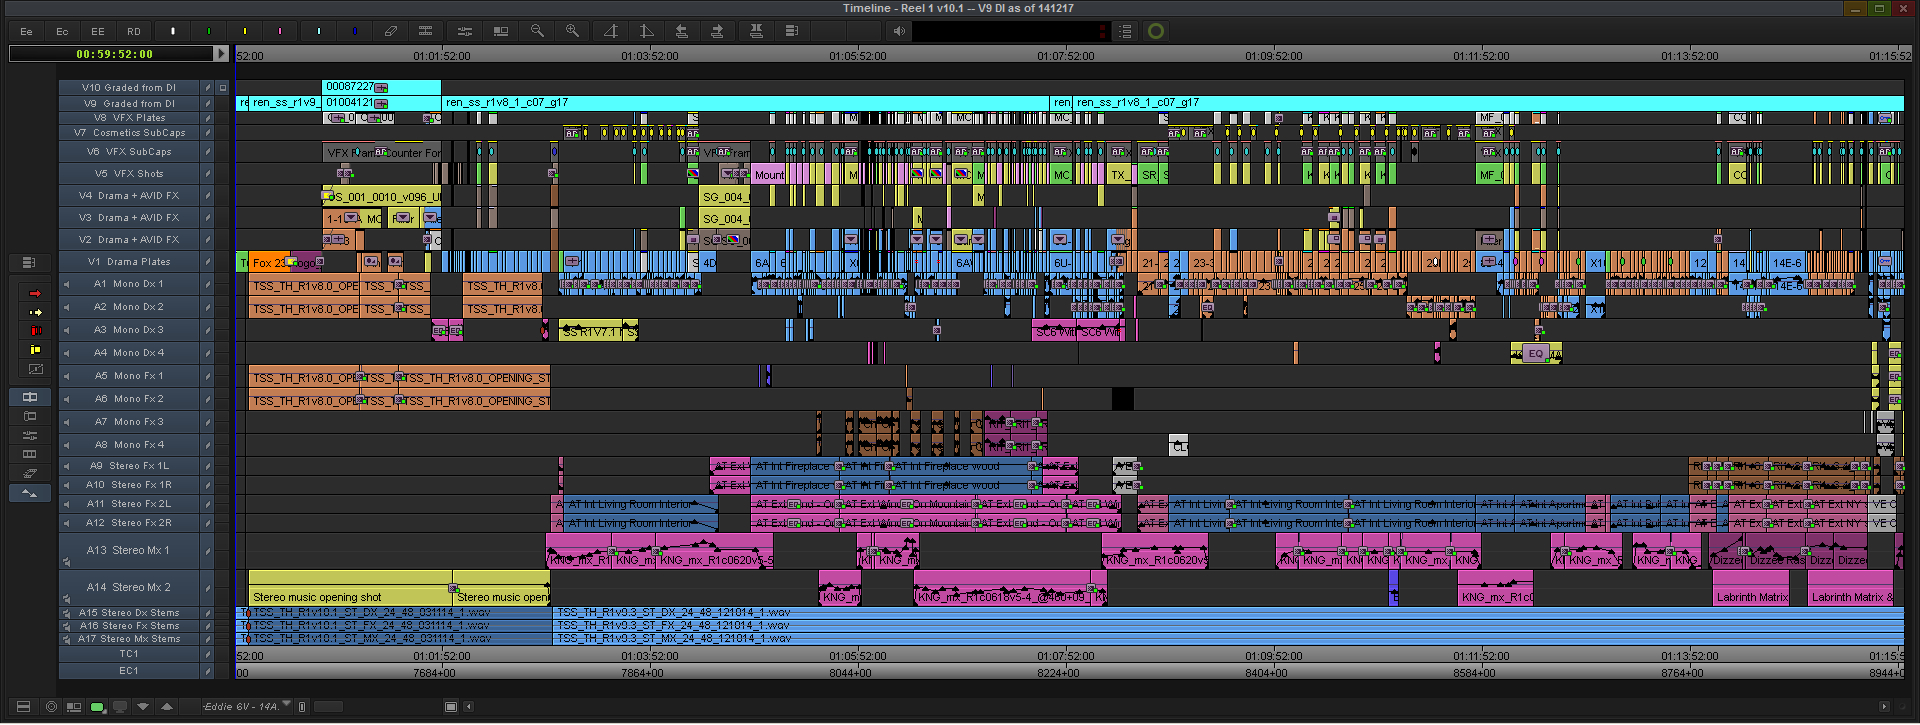 Kingsman-Final-Reel-1-Avid-MC-Timeline